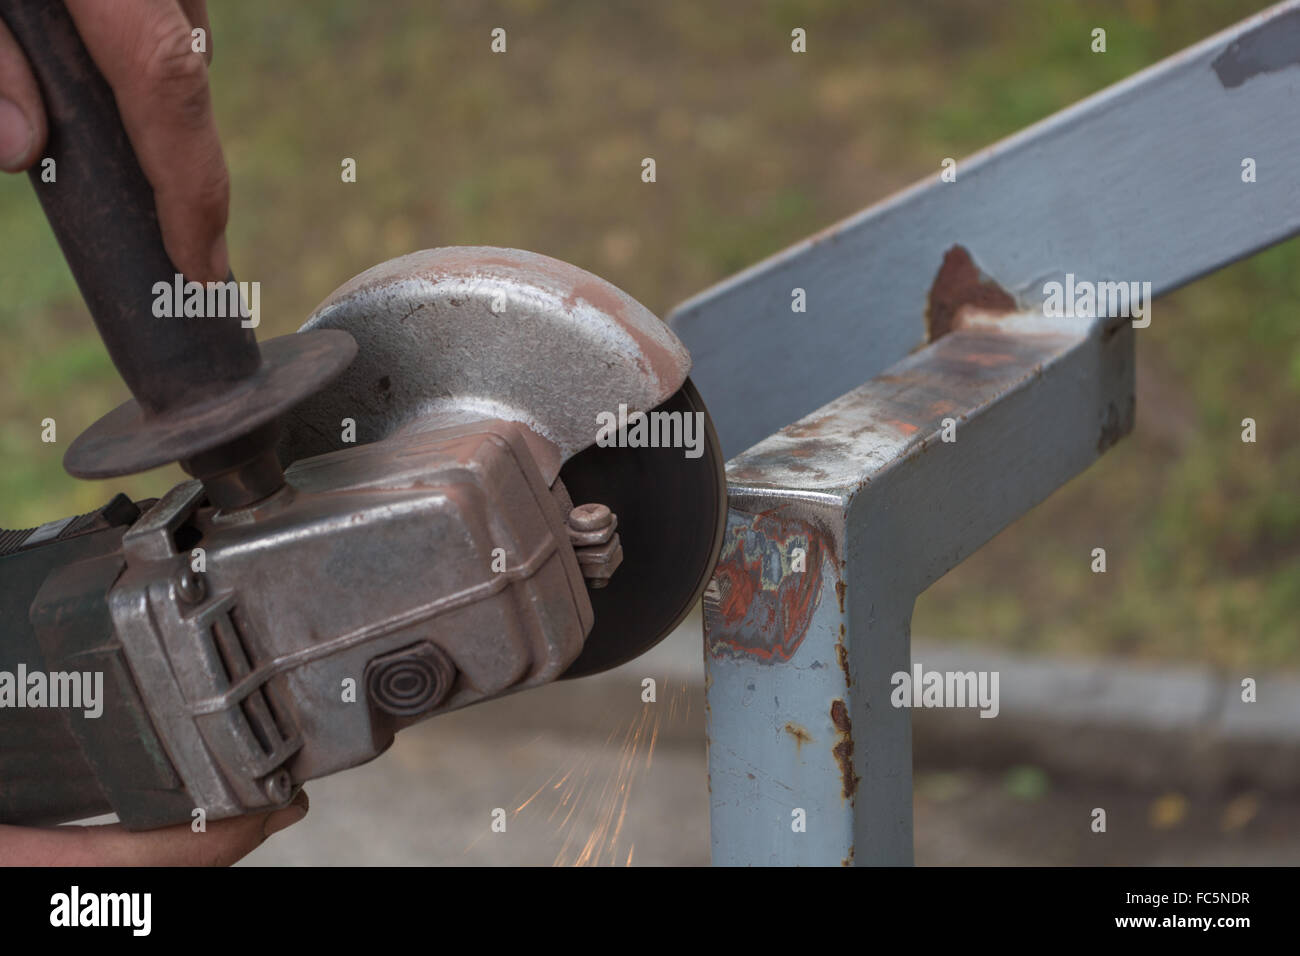 Metal is ground with angle grinder - Stock Image